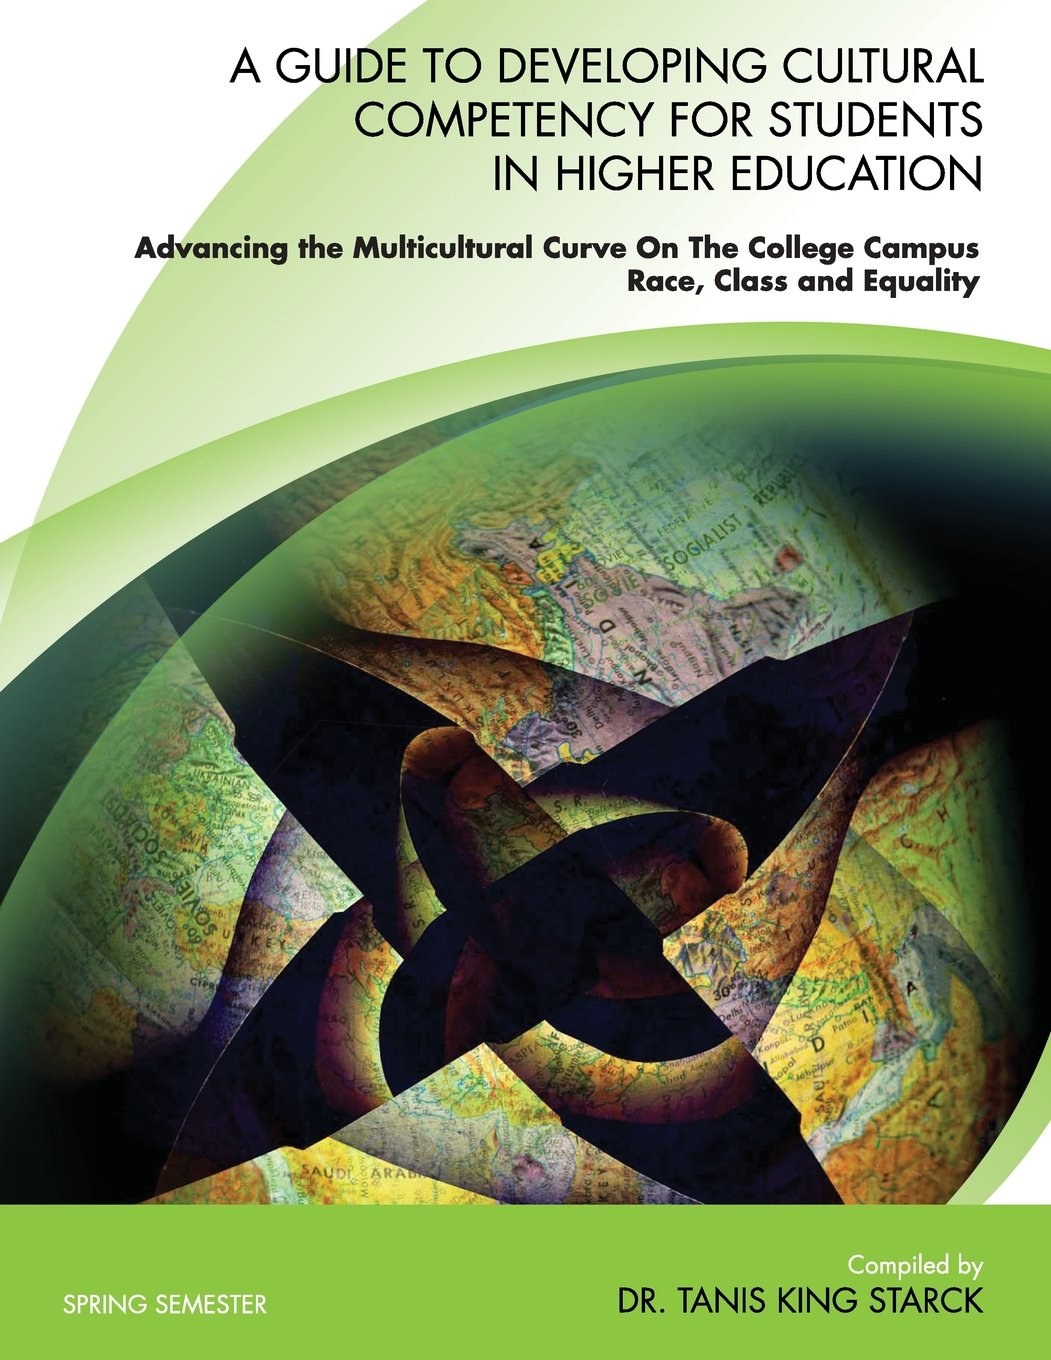 "Book cover: World map with title and author: ""A Guide To Developing Cultural Competency For Students In Higher Education Advancing the Multicultural Curve On The College Campus RACE, CLASS and EQUALITY"" - by Dr. Tanis King Starck."